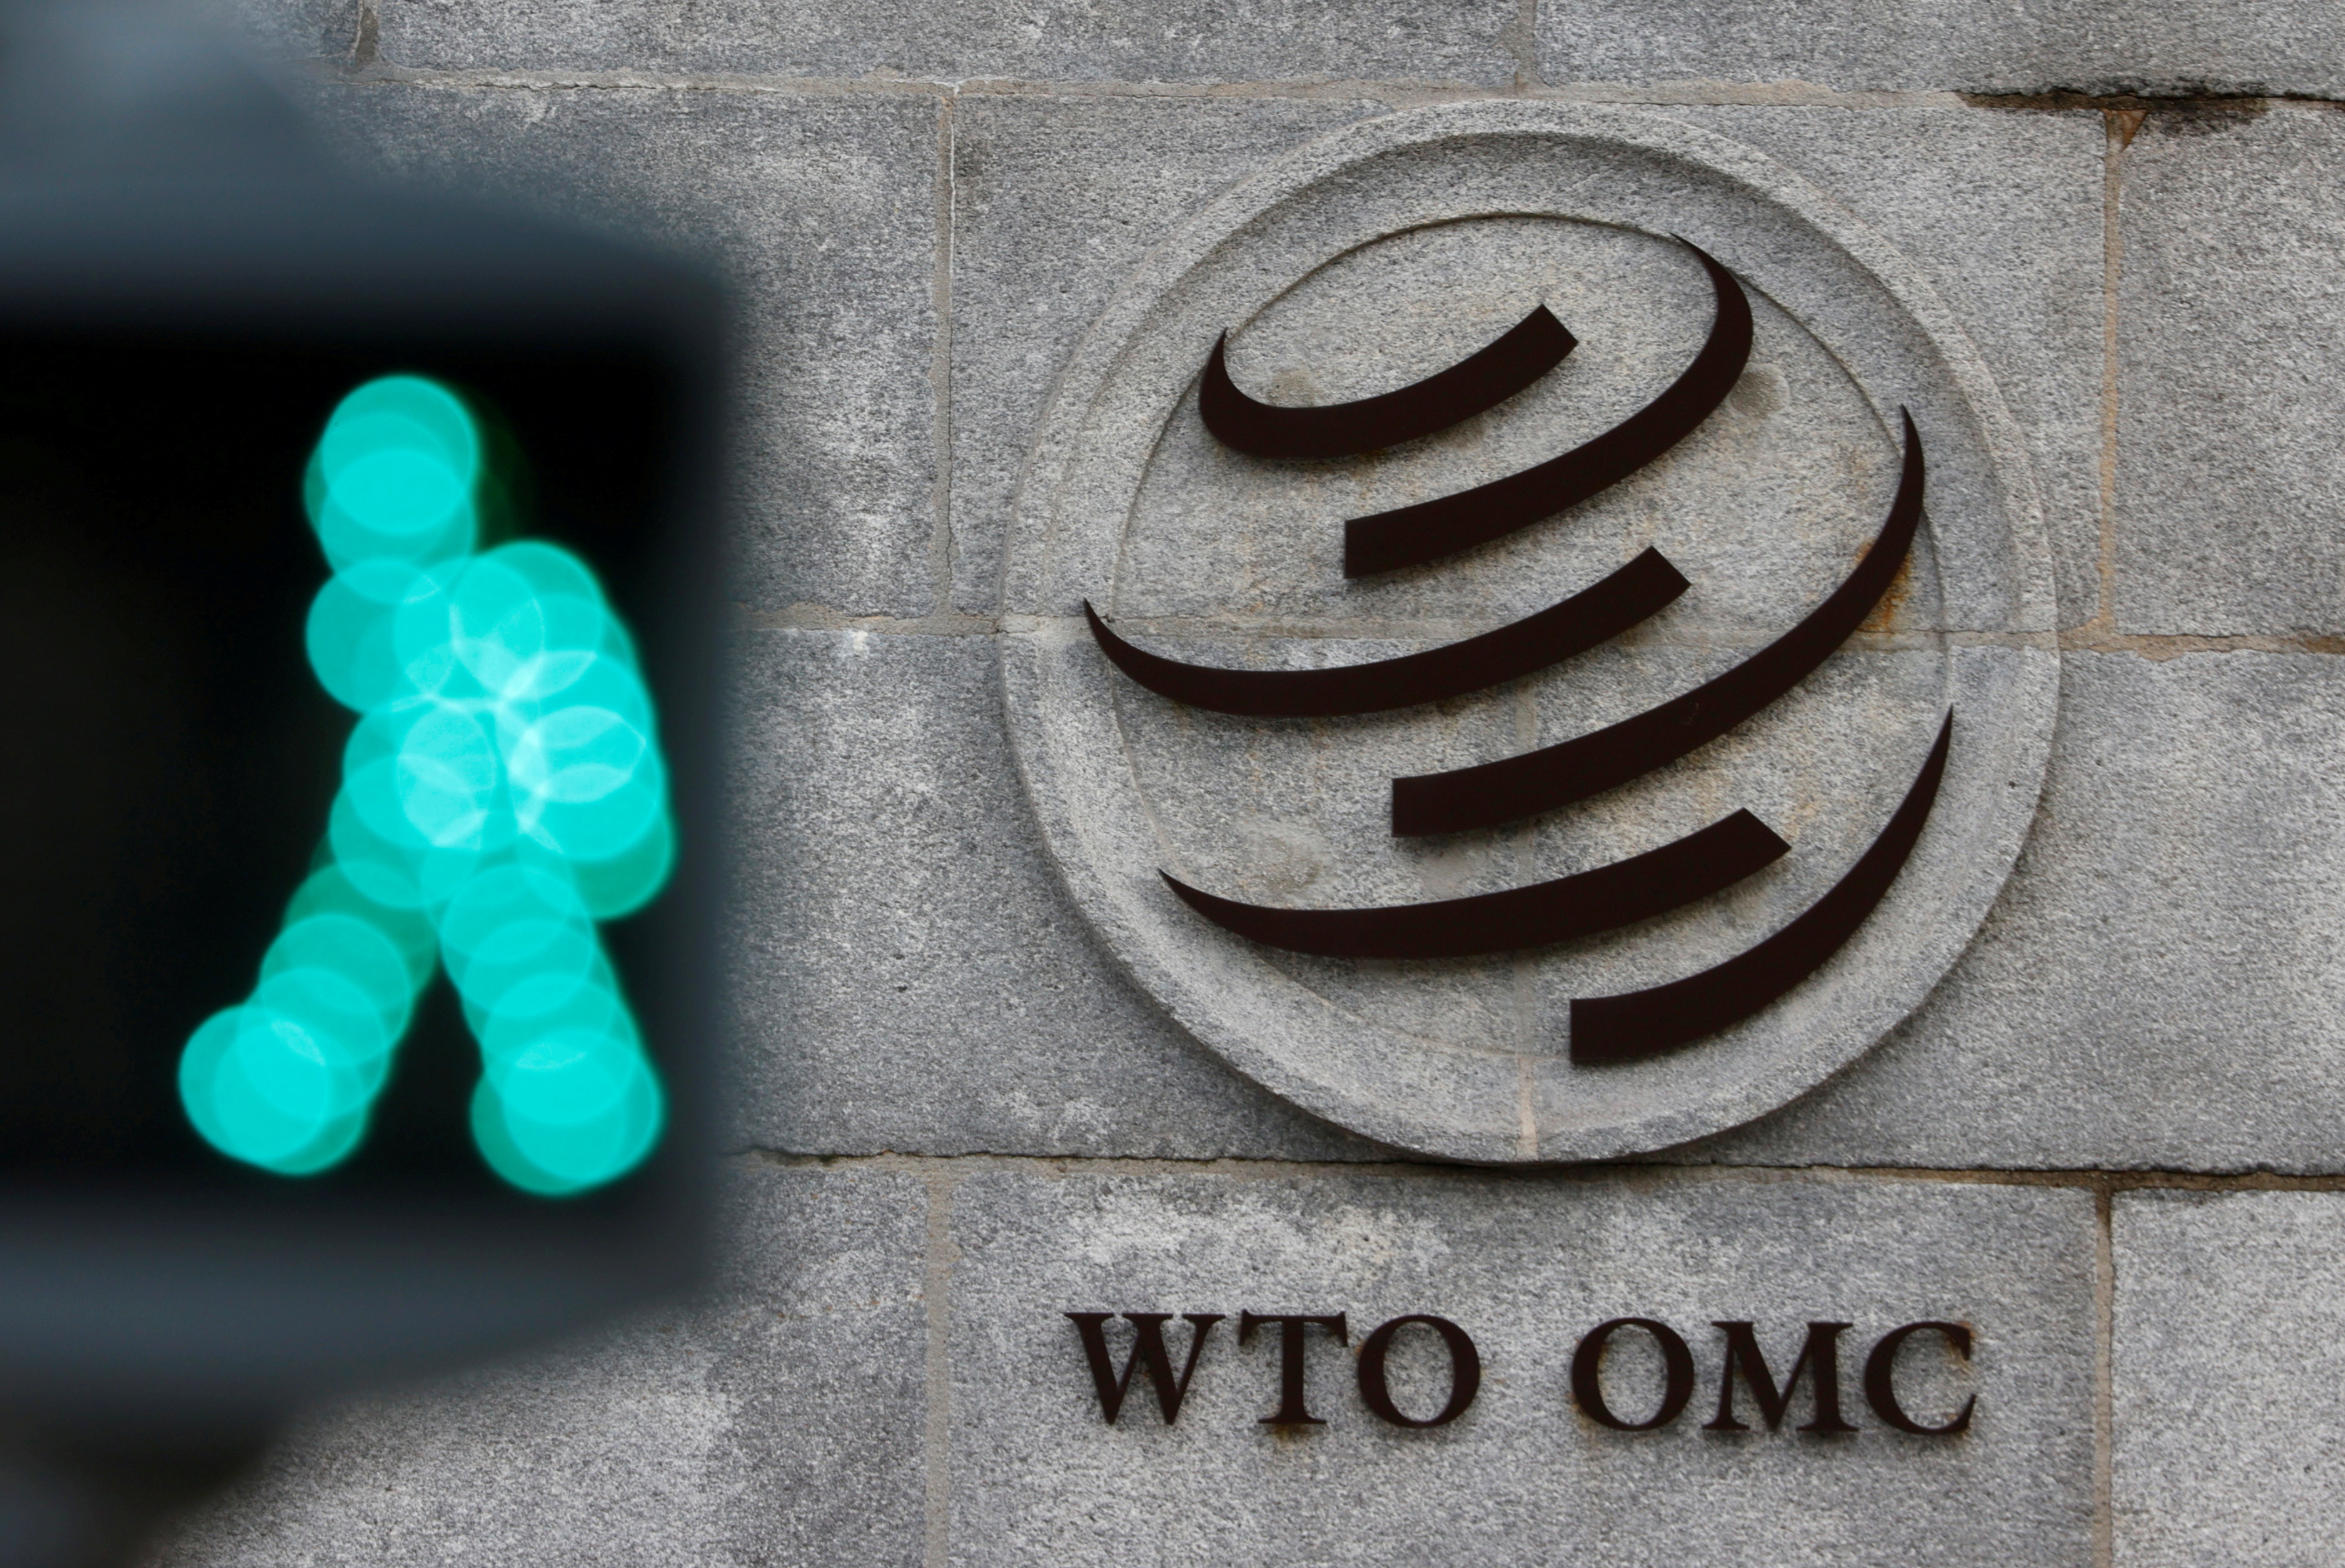 The  World Trade Organization (WTO) logo is pictured in front of their headquarters in Geneva, Switzerland, October 28, 2020. REUTERS/Denis Balibouse